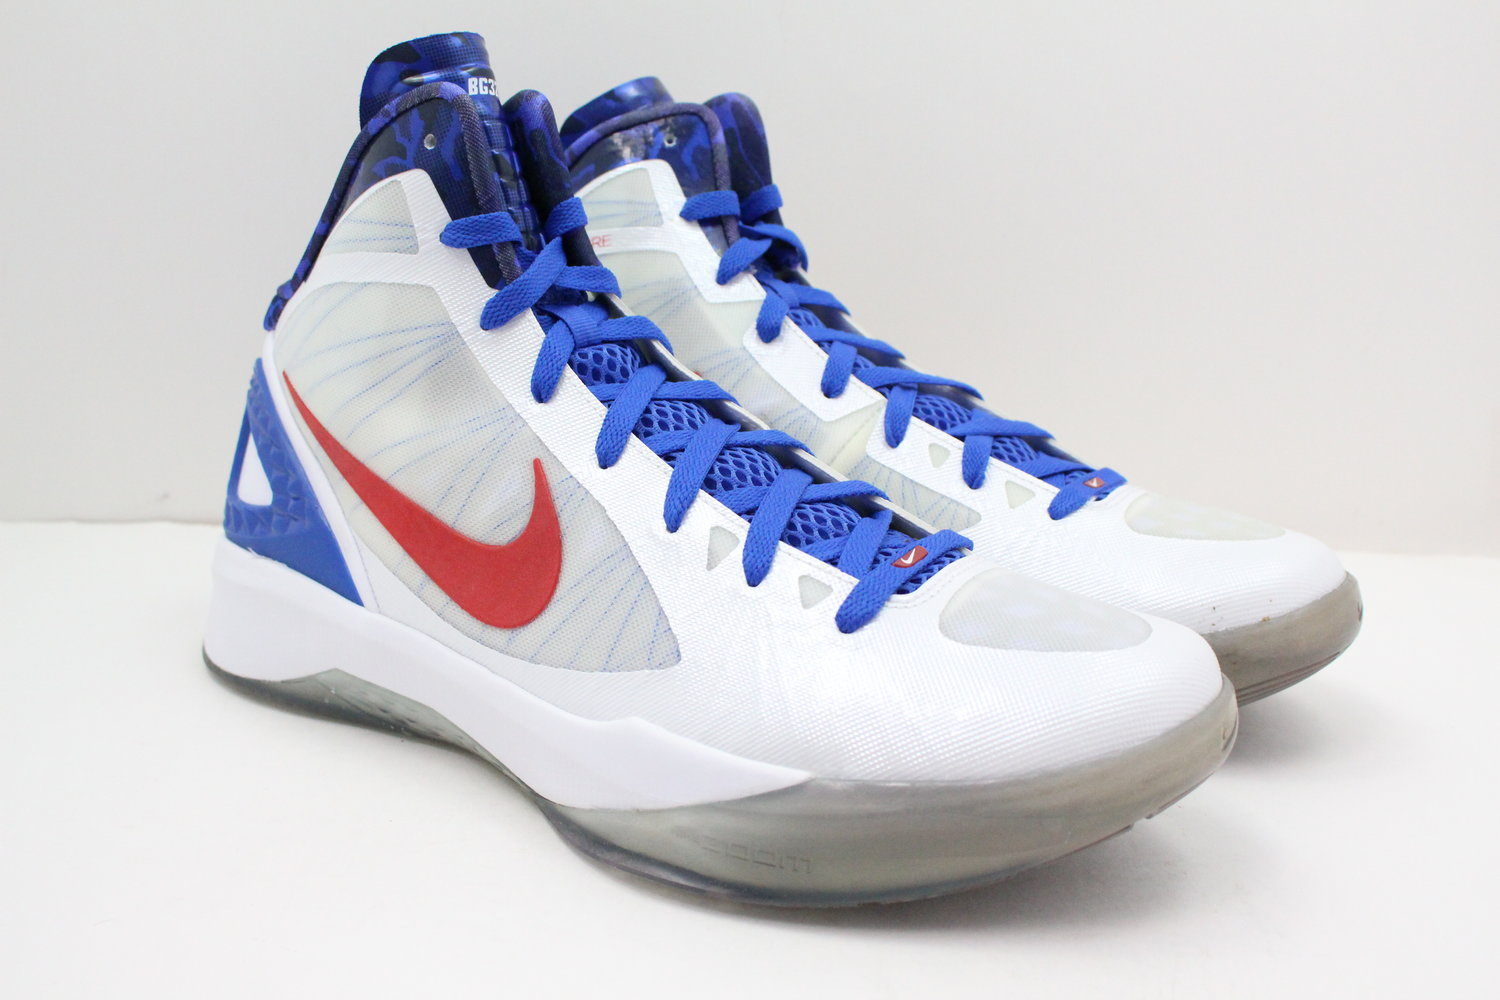 cc42fc1fd30d US 13 - Nike Zoom Hyperdunk 2011 Blake Griffin PE Home — Evolution ...